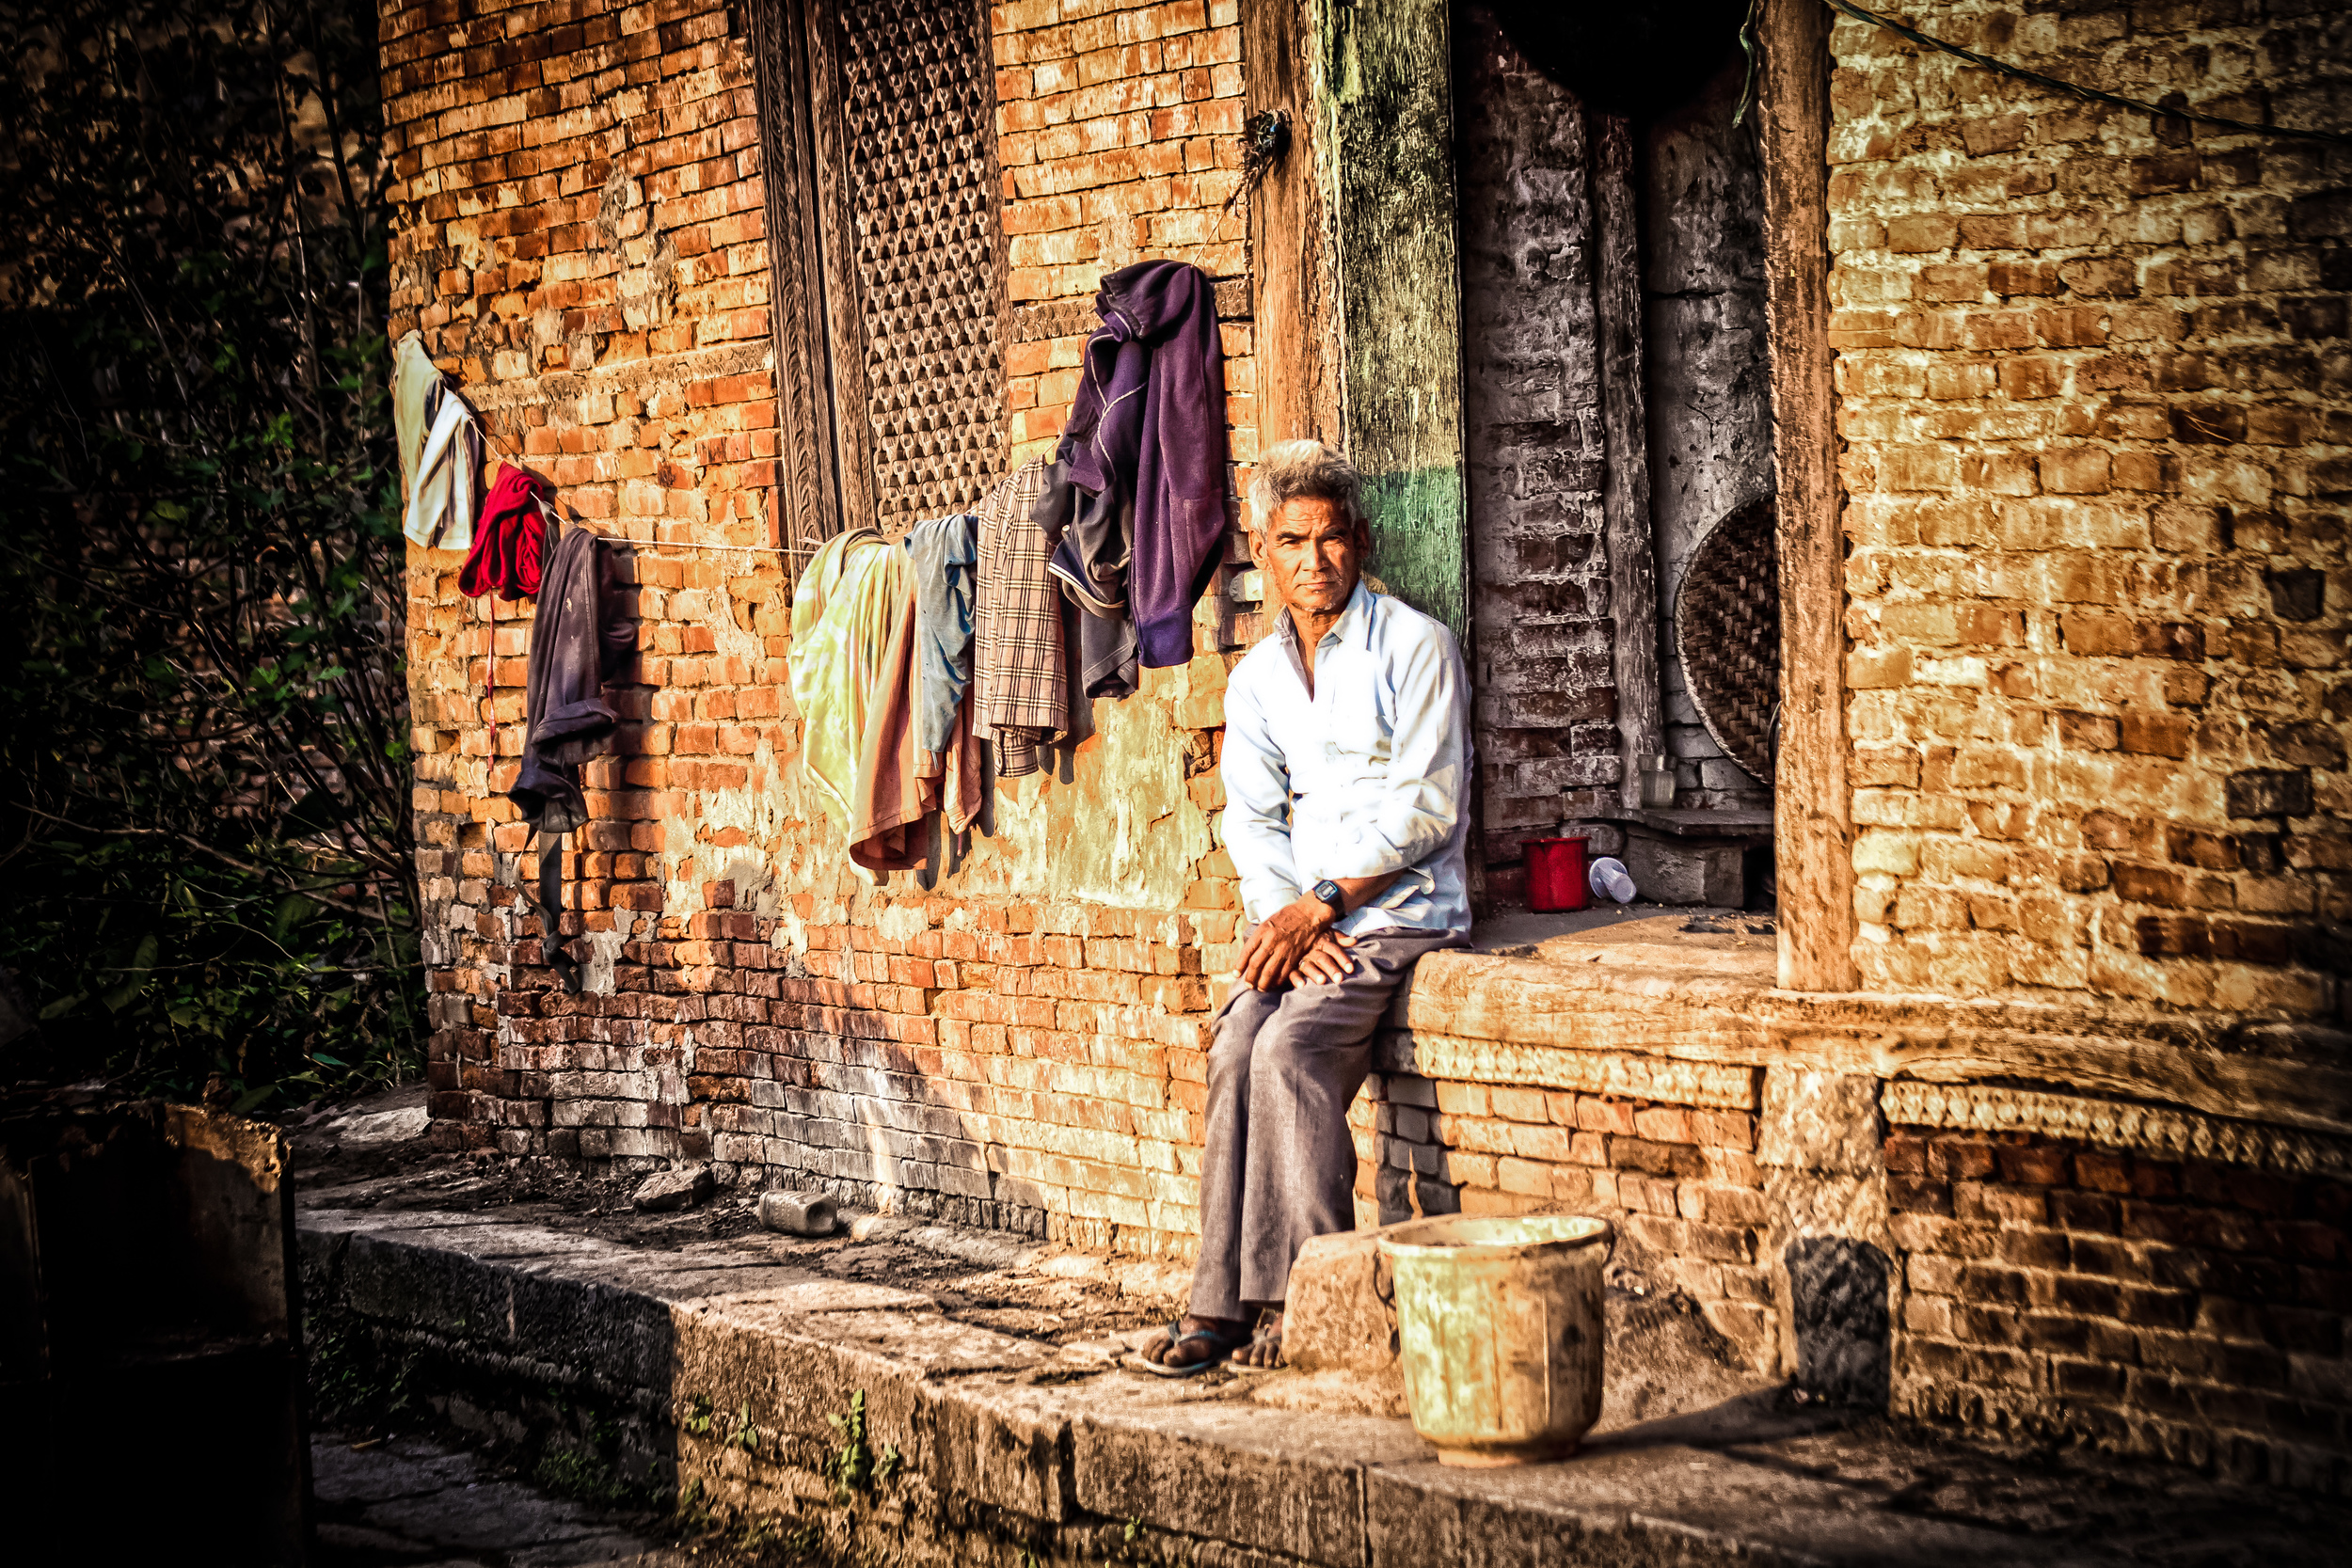 - A Nepali man outside of his house in Kathmandu with his drying clothing.